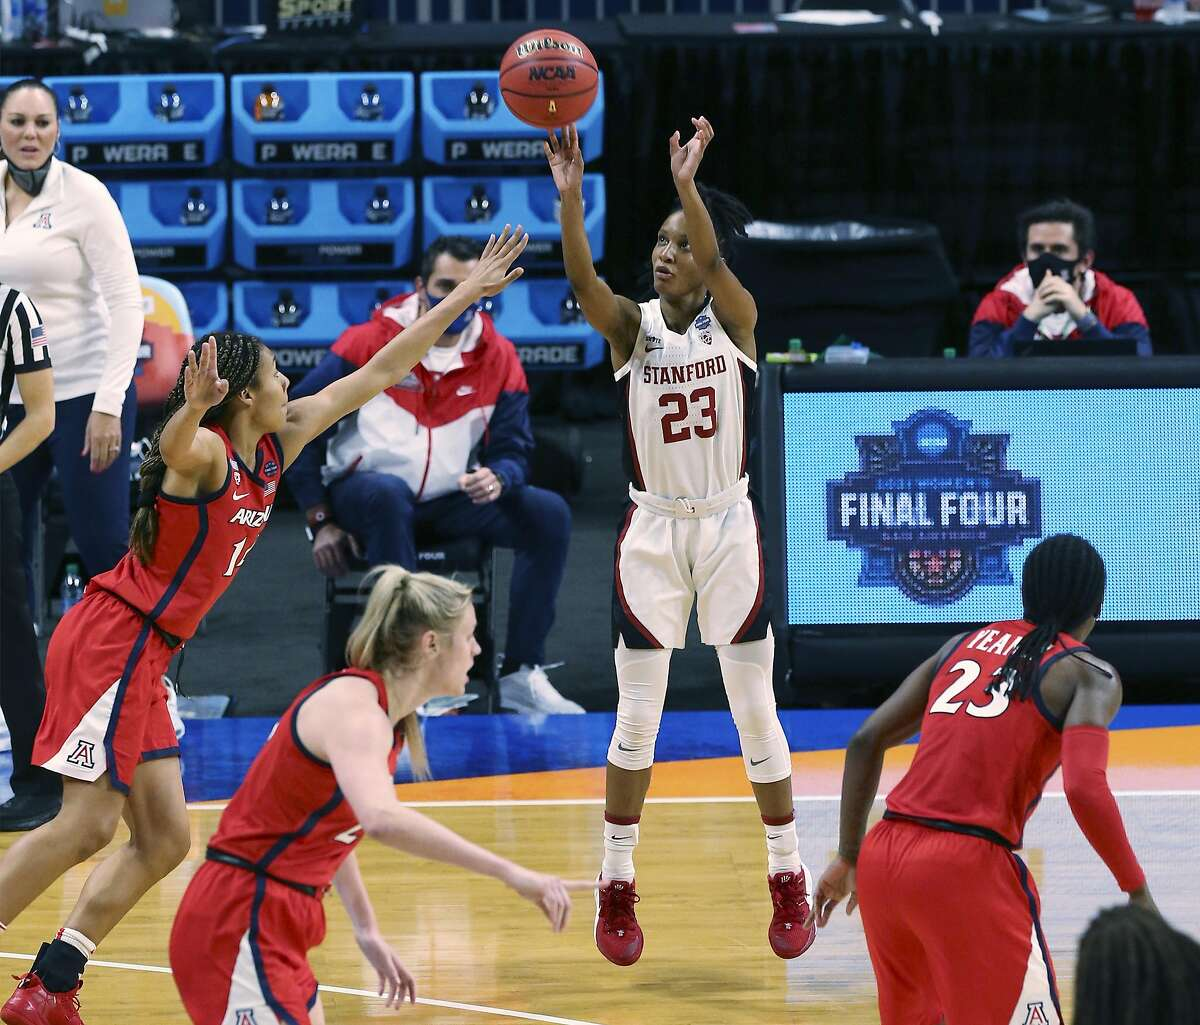 Stanford's Kiana Williams (23) launches a three against Arizona's Sam Thomas (14) during their 2021 NCAA Women's Final Four National Champion basketball game at the Alamodome on Sunday, Apr. 4, 2021.